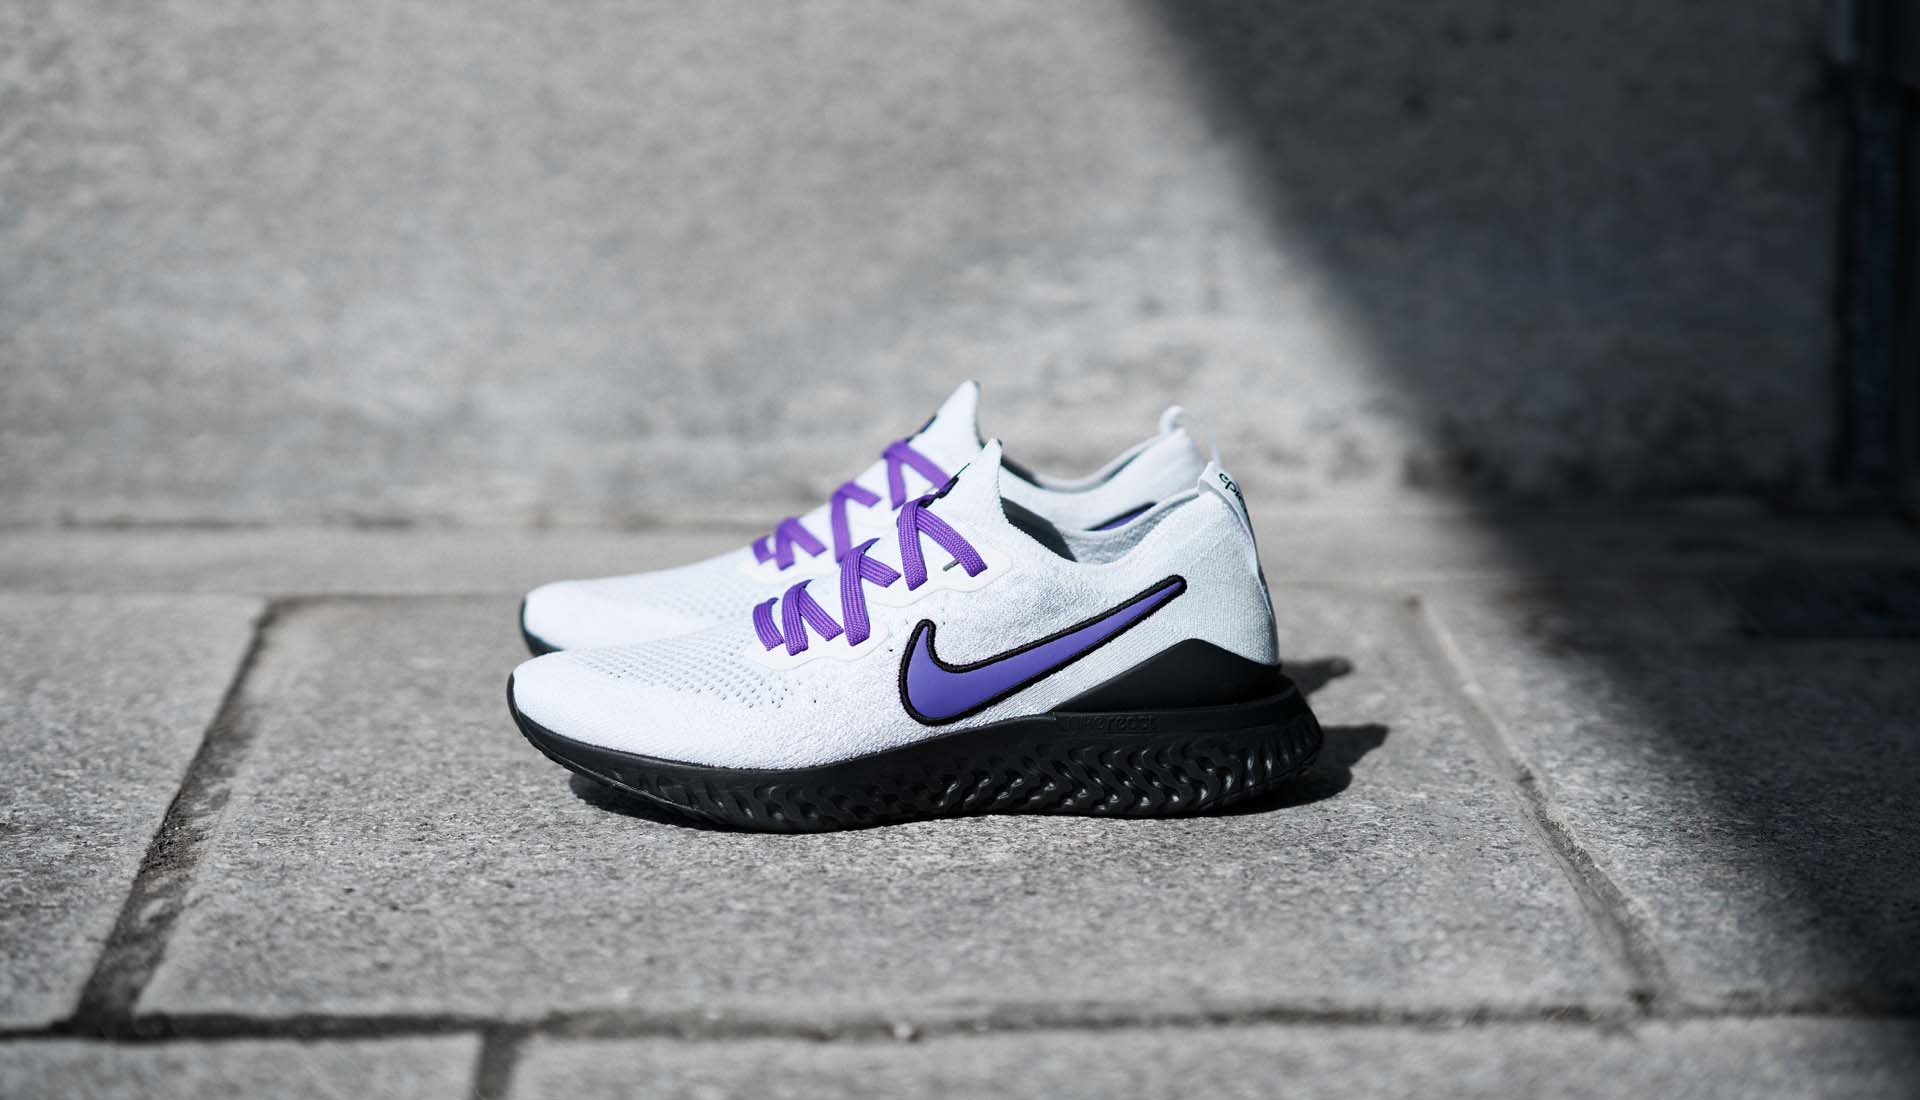 a285cf6140e80 Closer Look at the Nike Spurs Epic React Flyknit 2 - SoccerBible